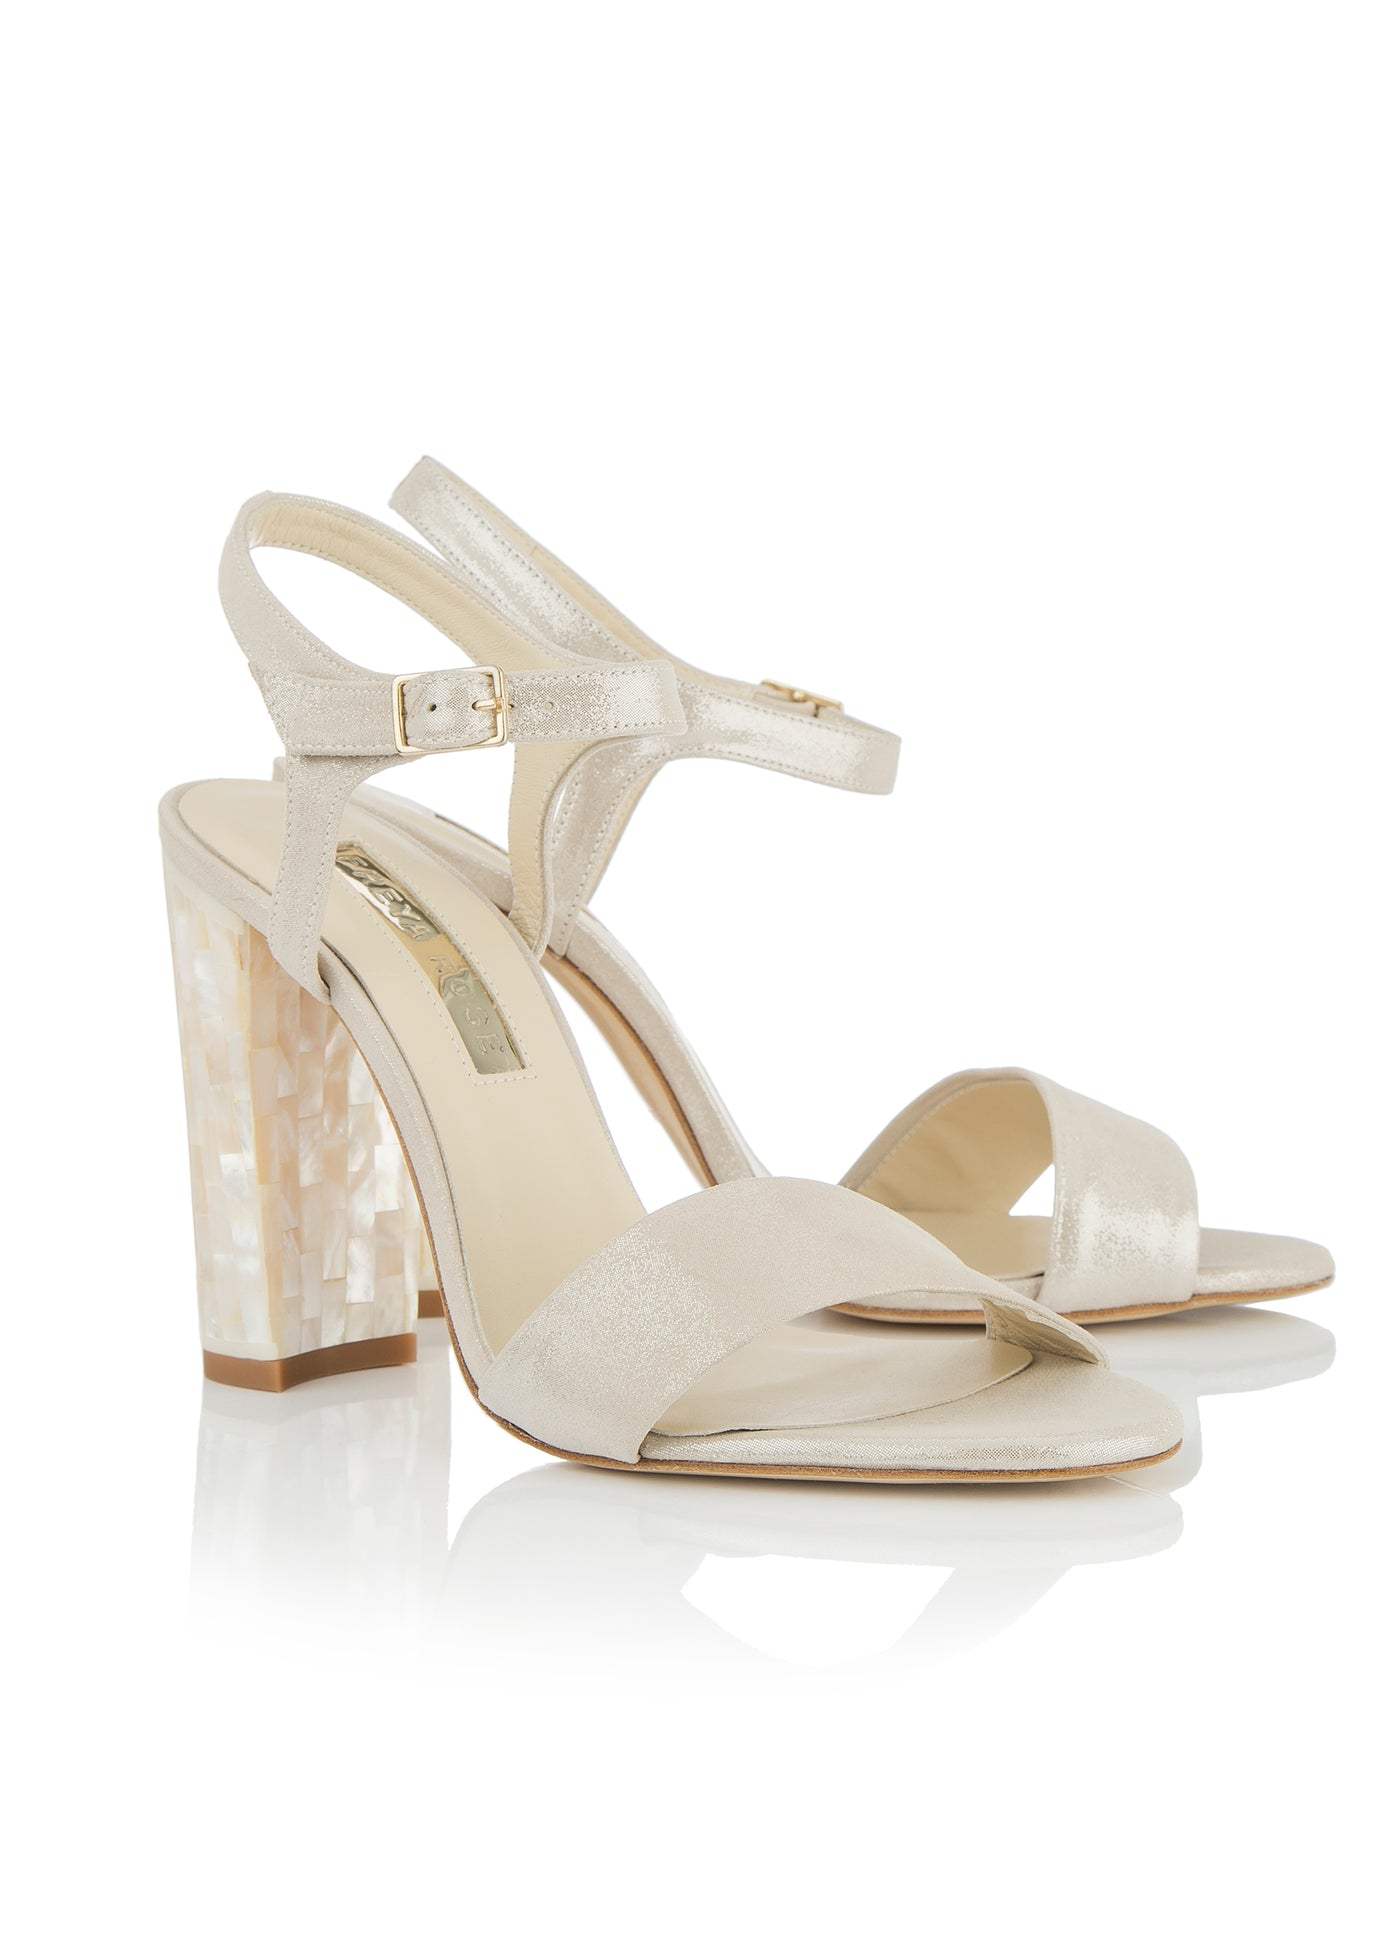 Martina - Last Pair, Shoes, Freya Rose - Eternal Bridal